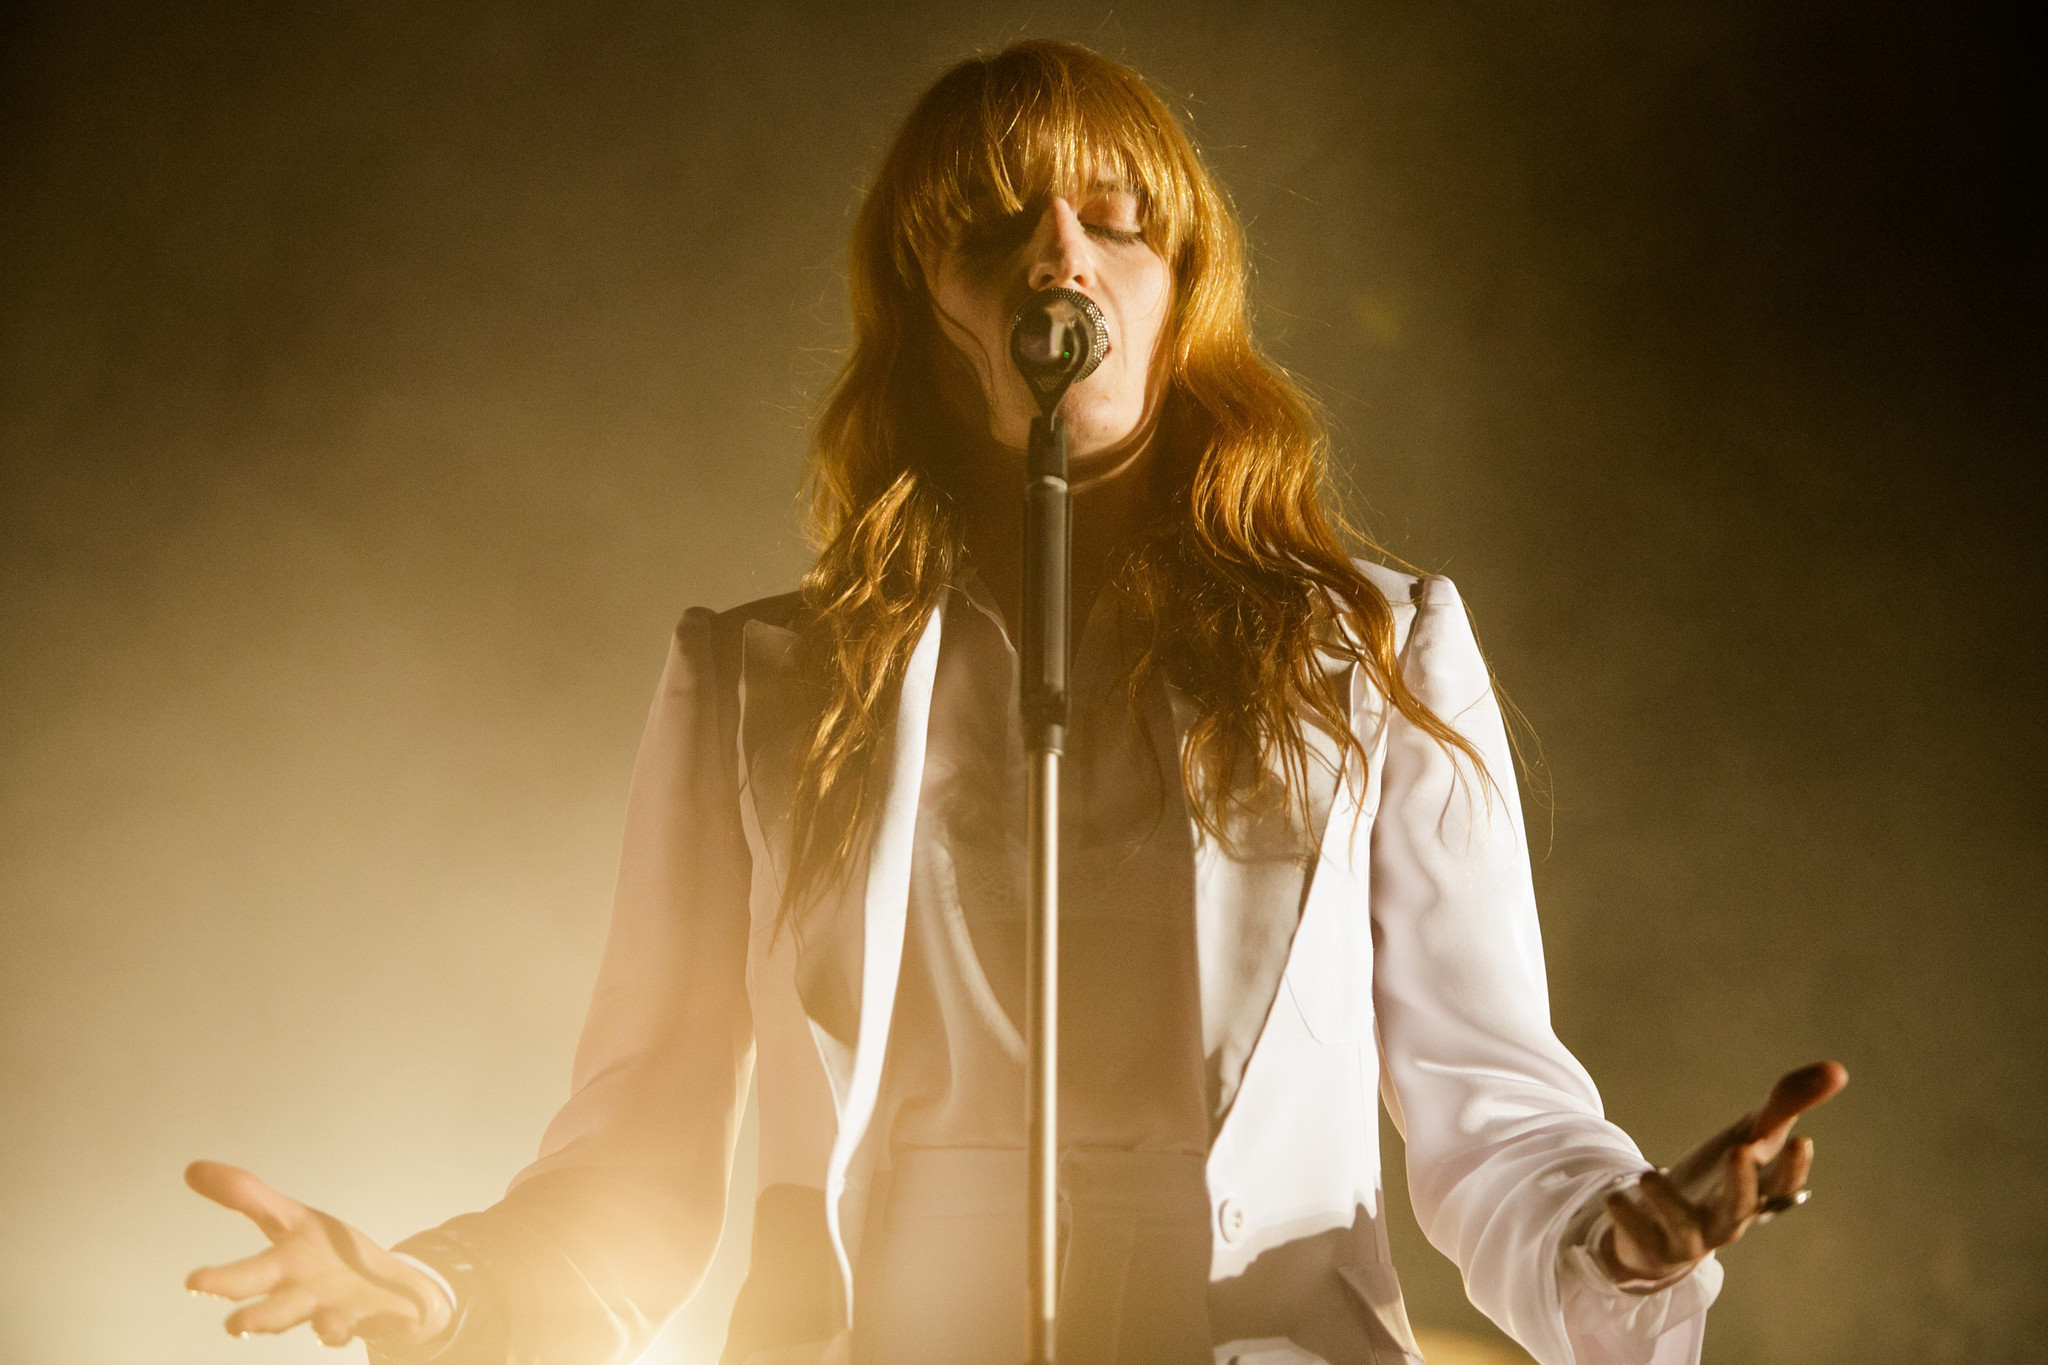 florence_la-et-ms-coachella-2015-florence-the-machine-owns-the-night-20150413.jpg